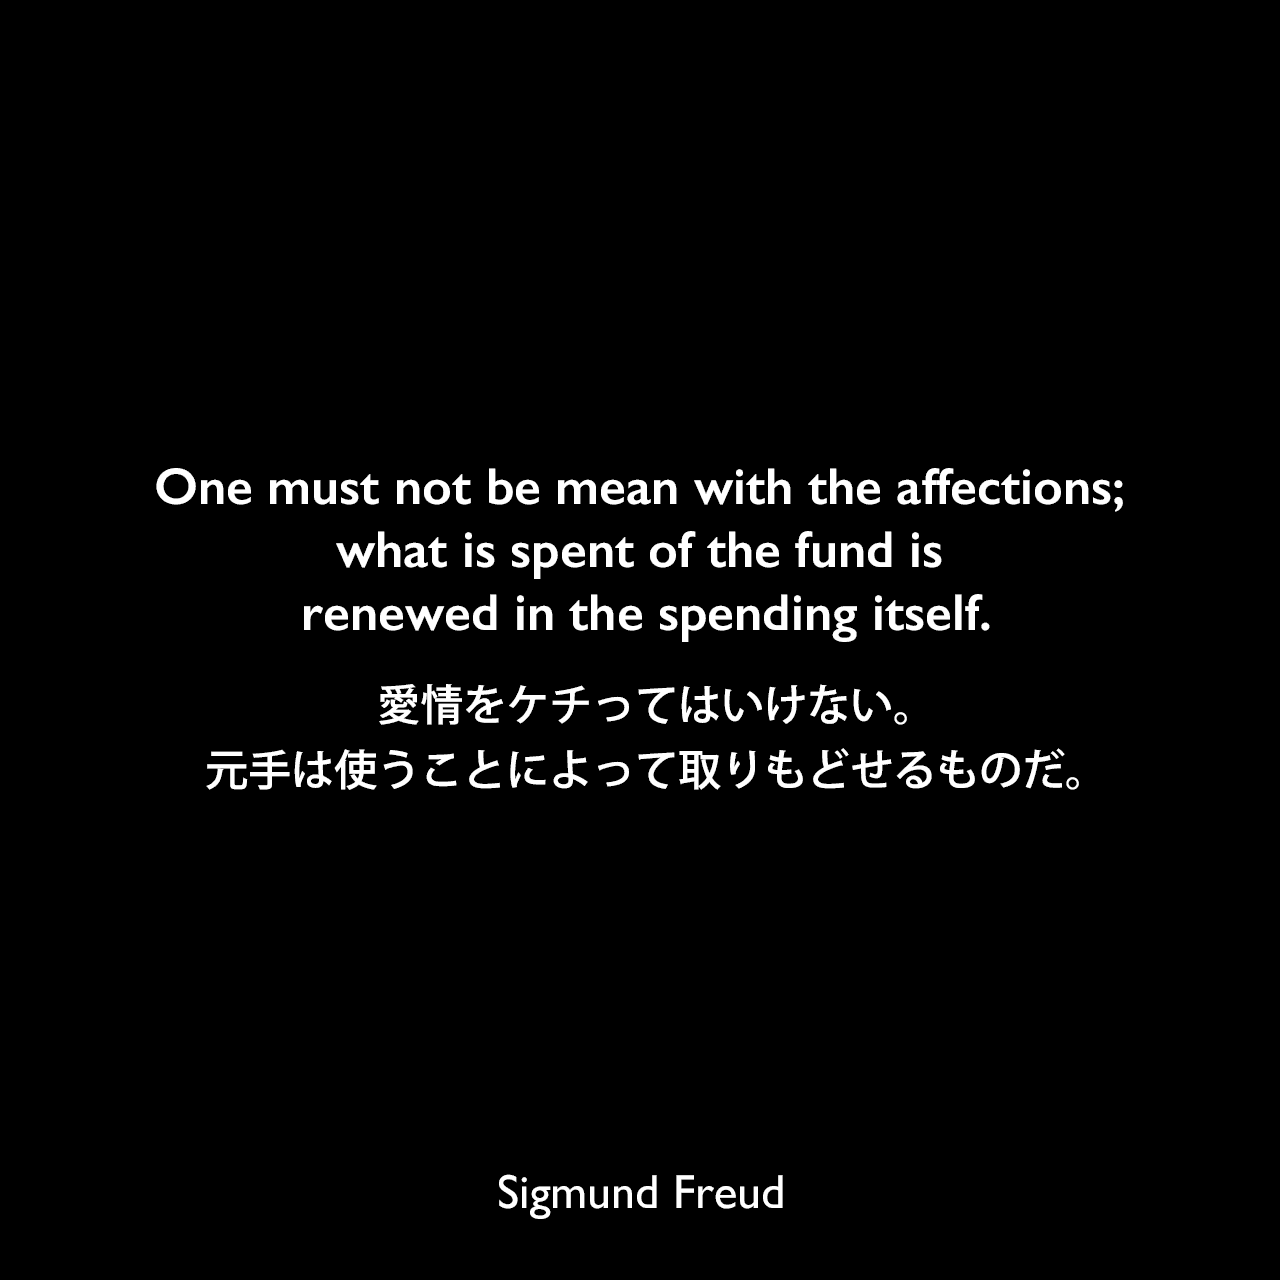 One must not be mean with the affections; what is spent of the fund is renewed in the spending itself.愛情をケチってはいけない。元手は使うことによって取りもどせるものだ。Sigmund Freud